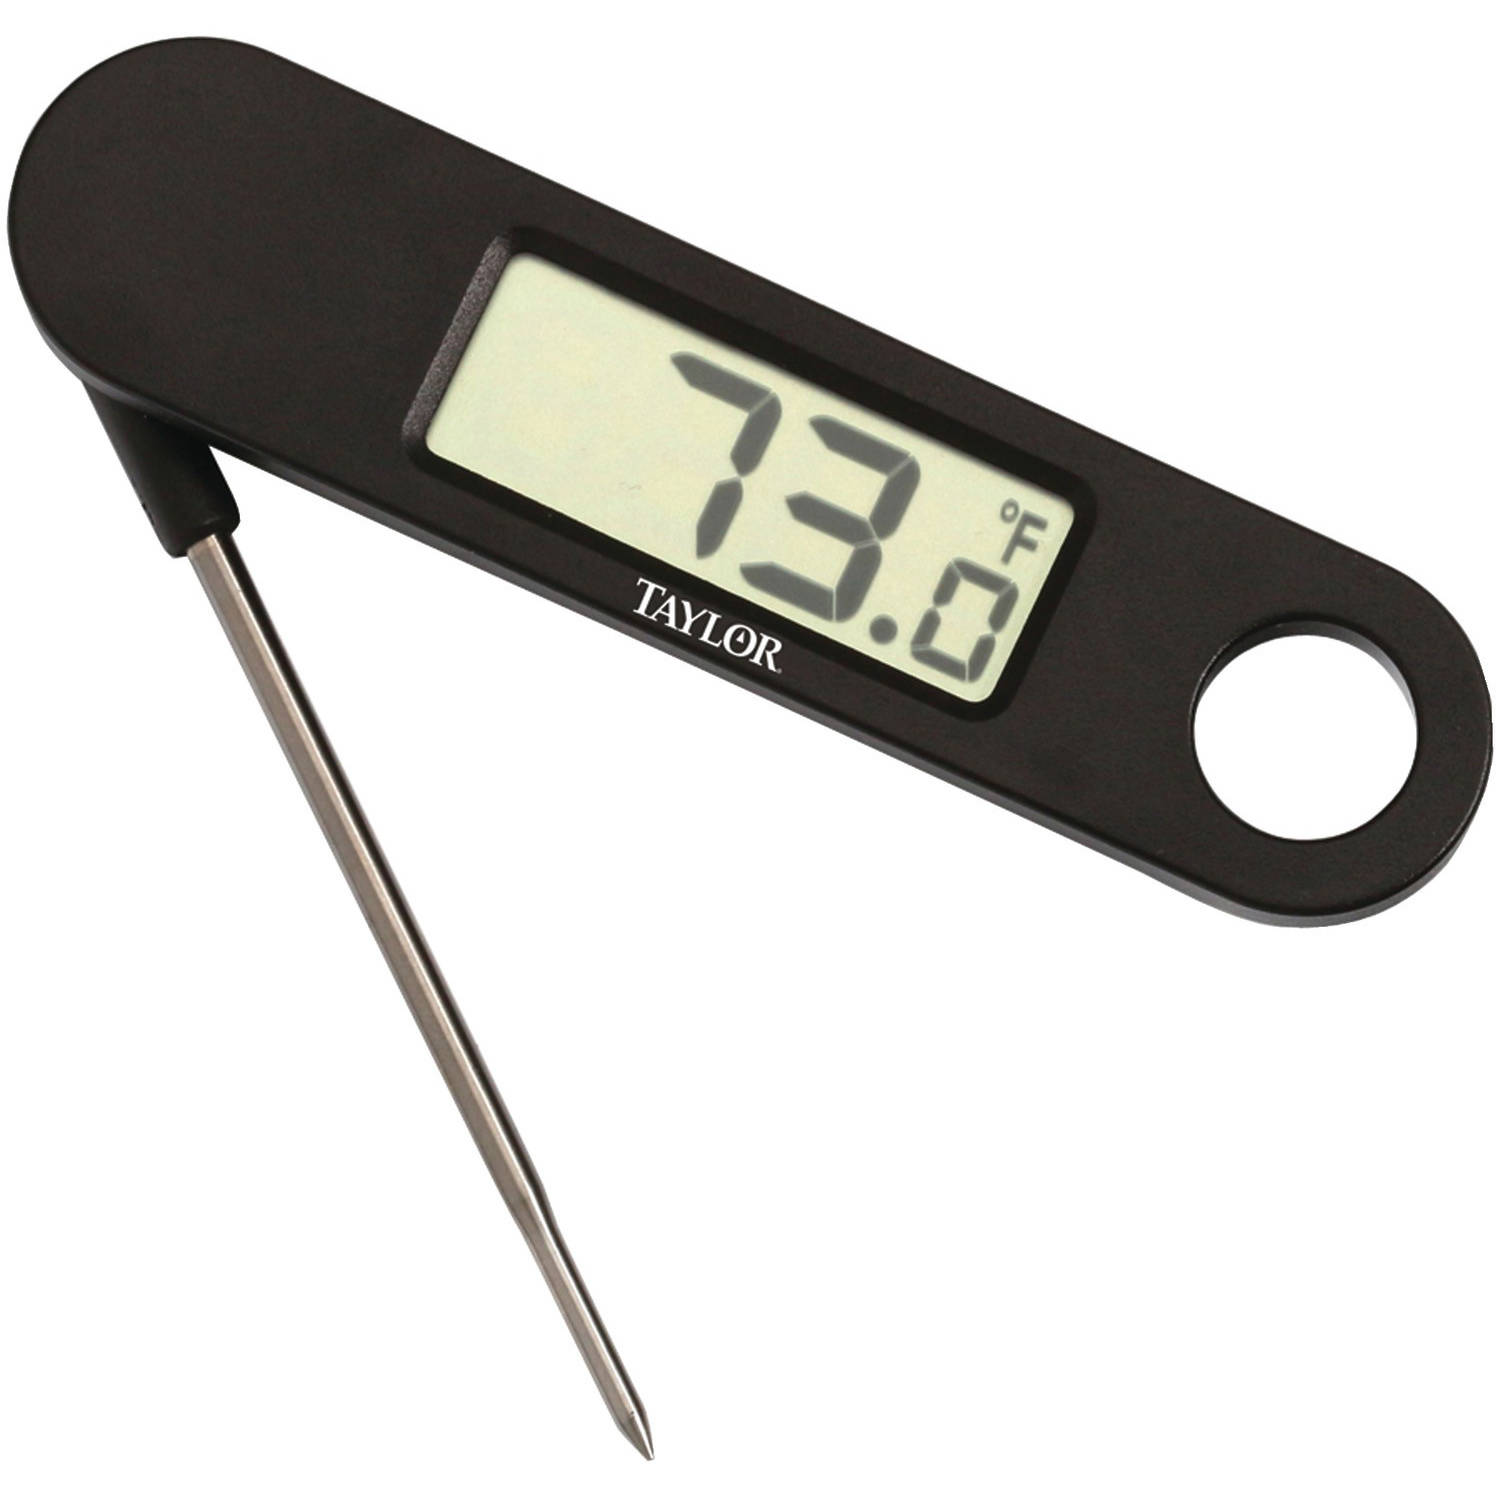 "Taylor 14769 Digital 0.7"" Lcd Folding Thermometer"